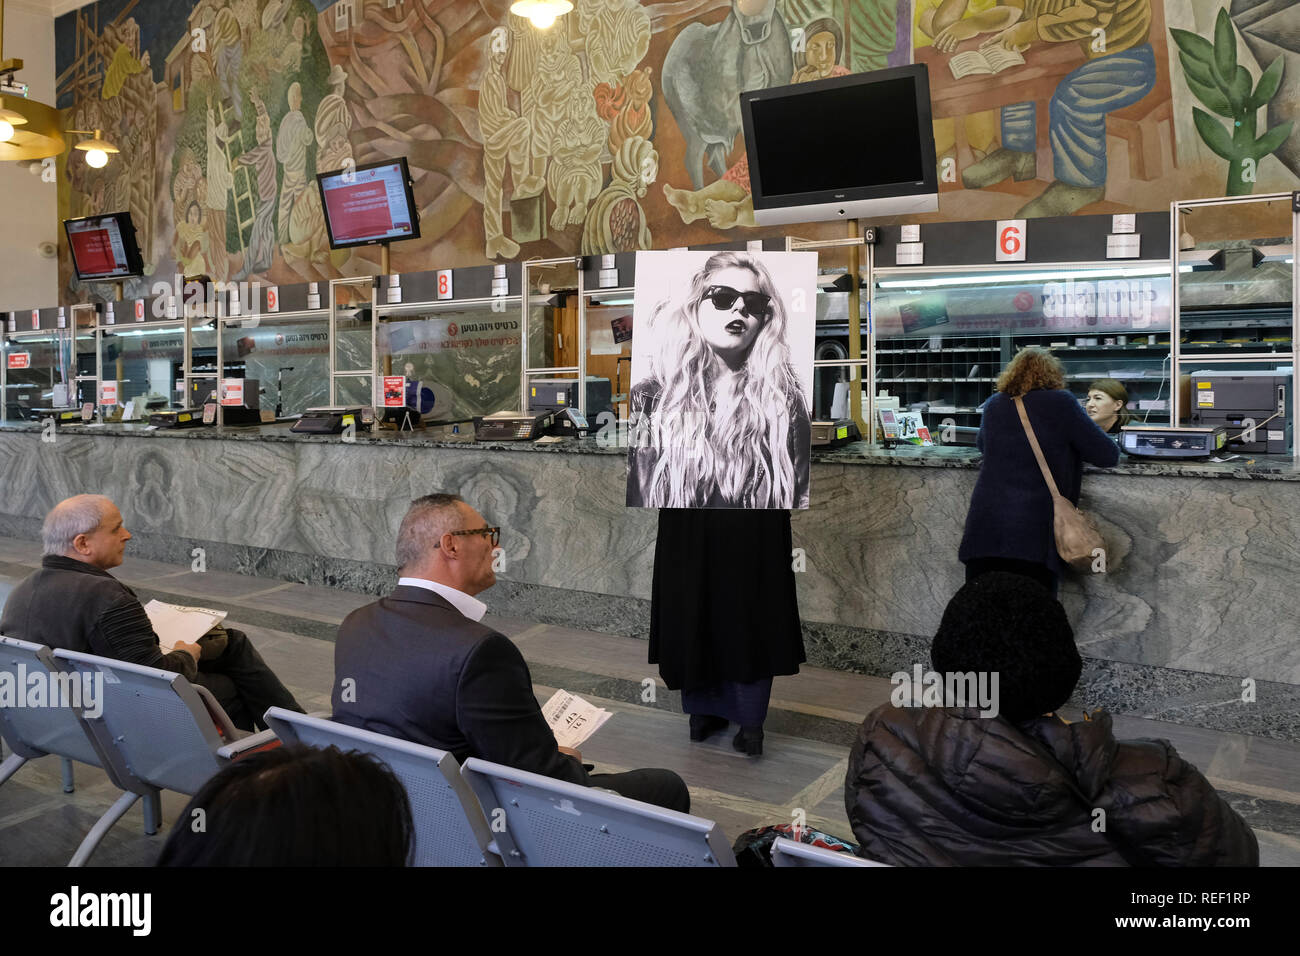 Young Israeli artist Korin Abisdris carrying a large portrait of herself on her back as a tribute to the work of Israeli artist Moti Mizrachi ( 1973) entitled 'Via Dolorosa' in the central post office in West Jerusalem Israel - Stock Image